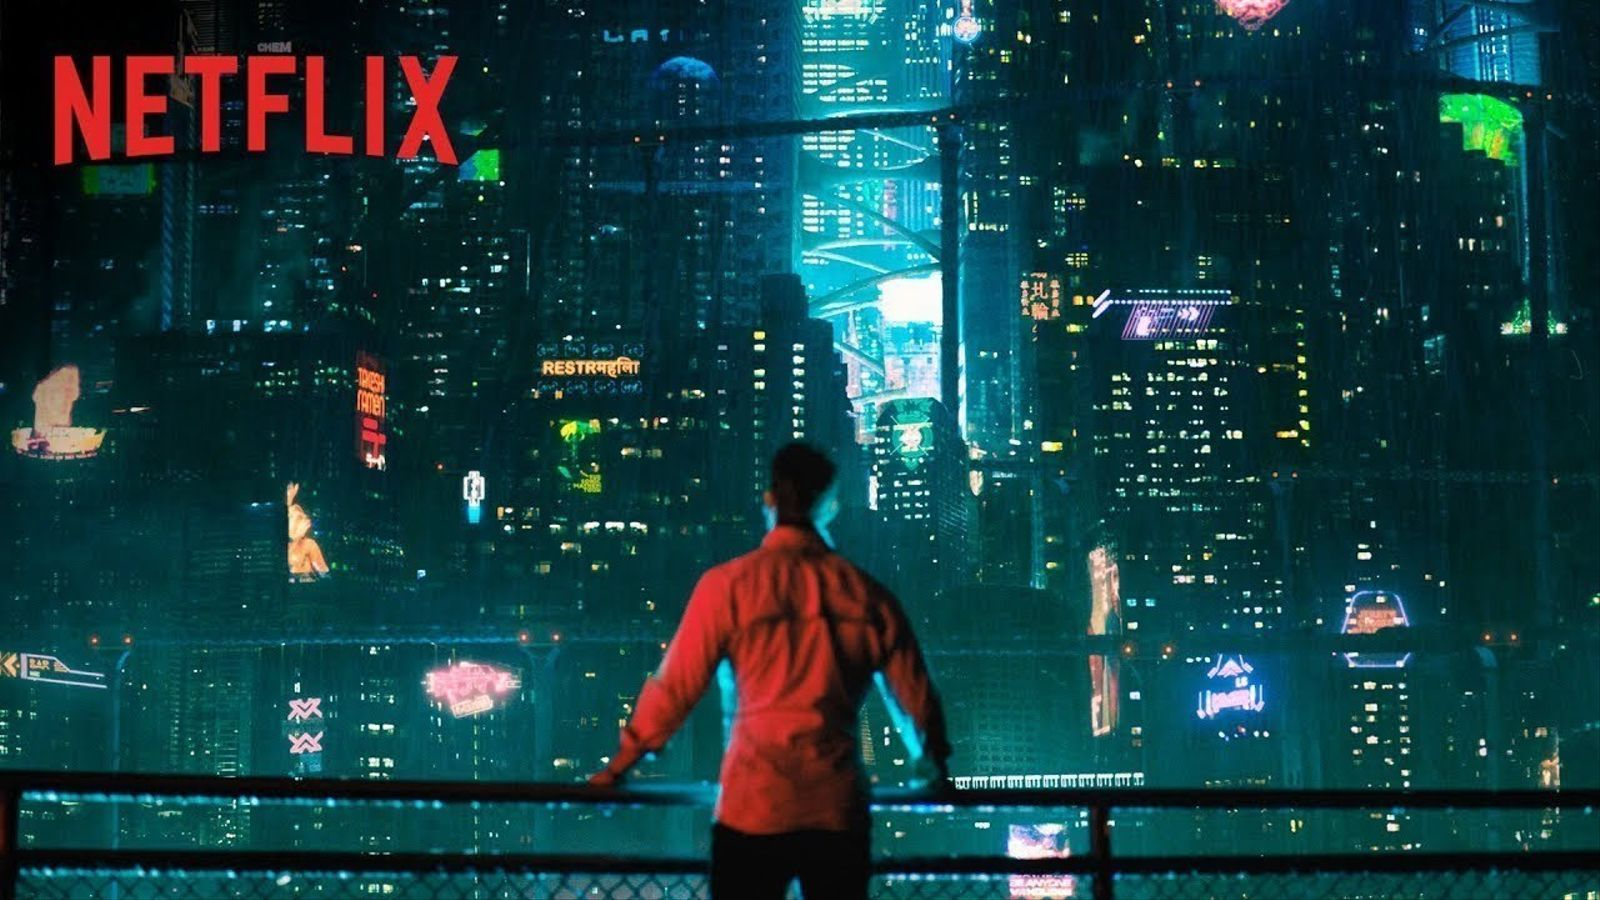 Trailer d''Altered carbon'